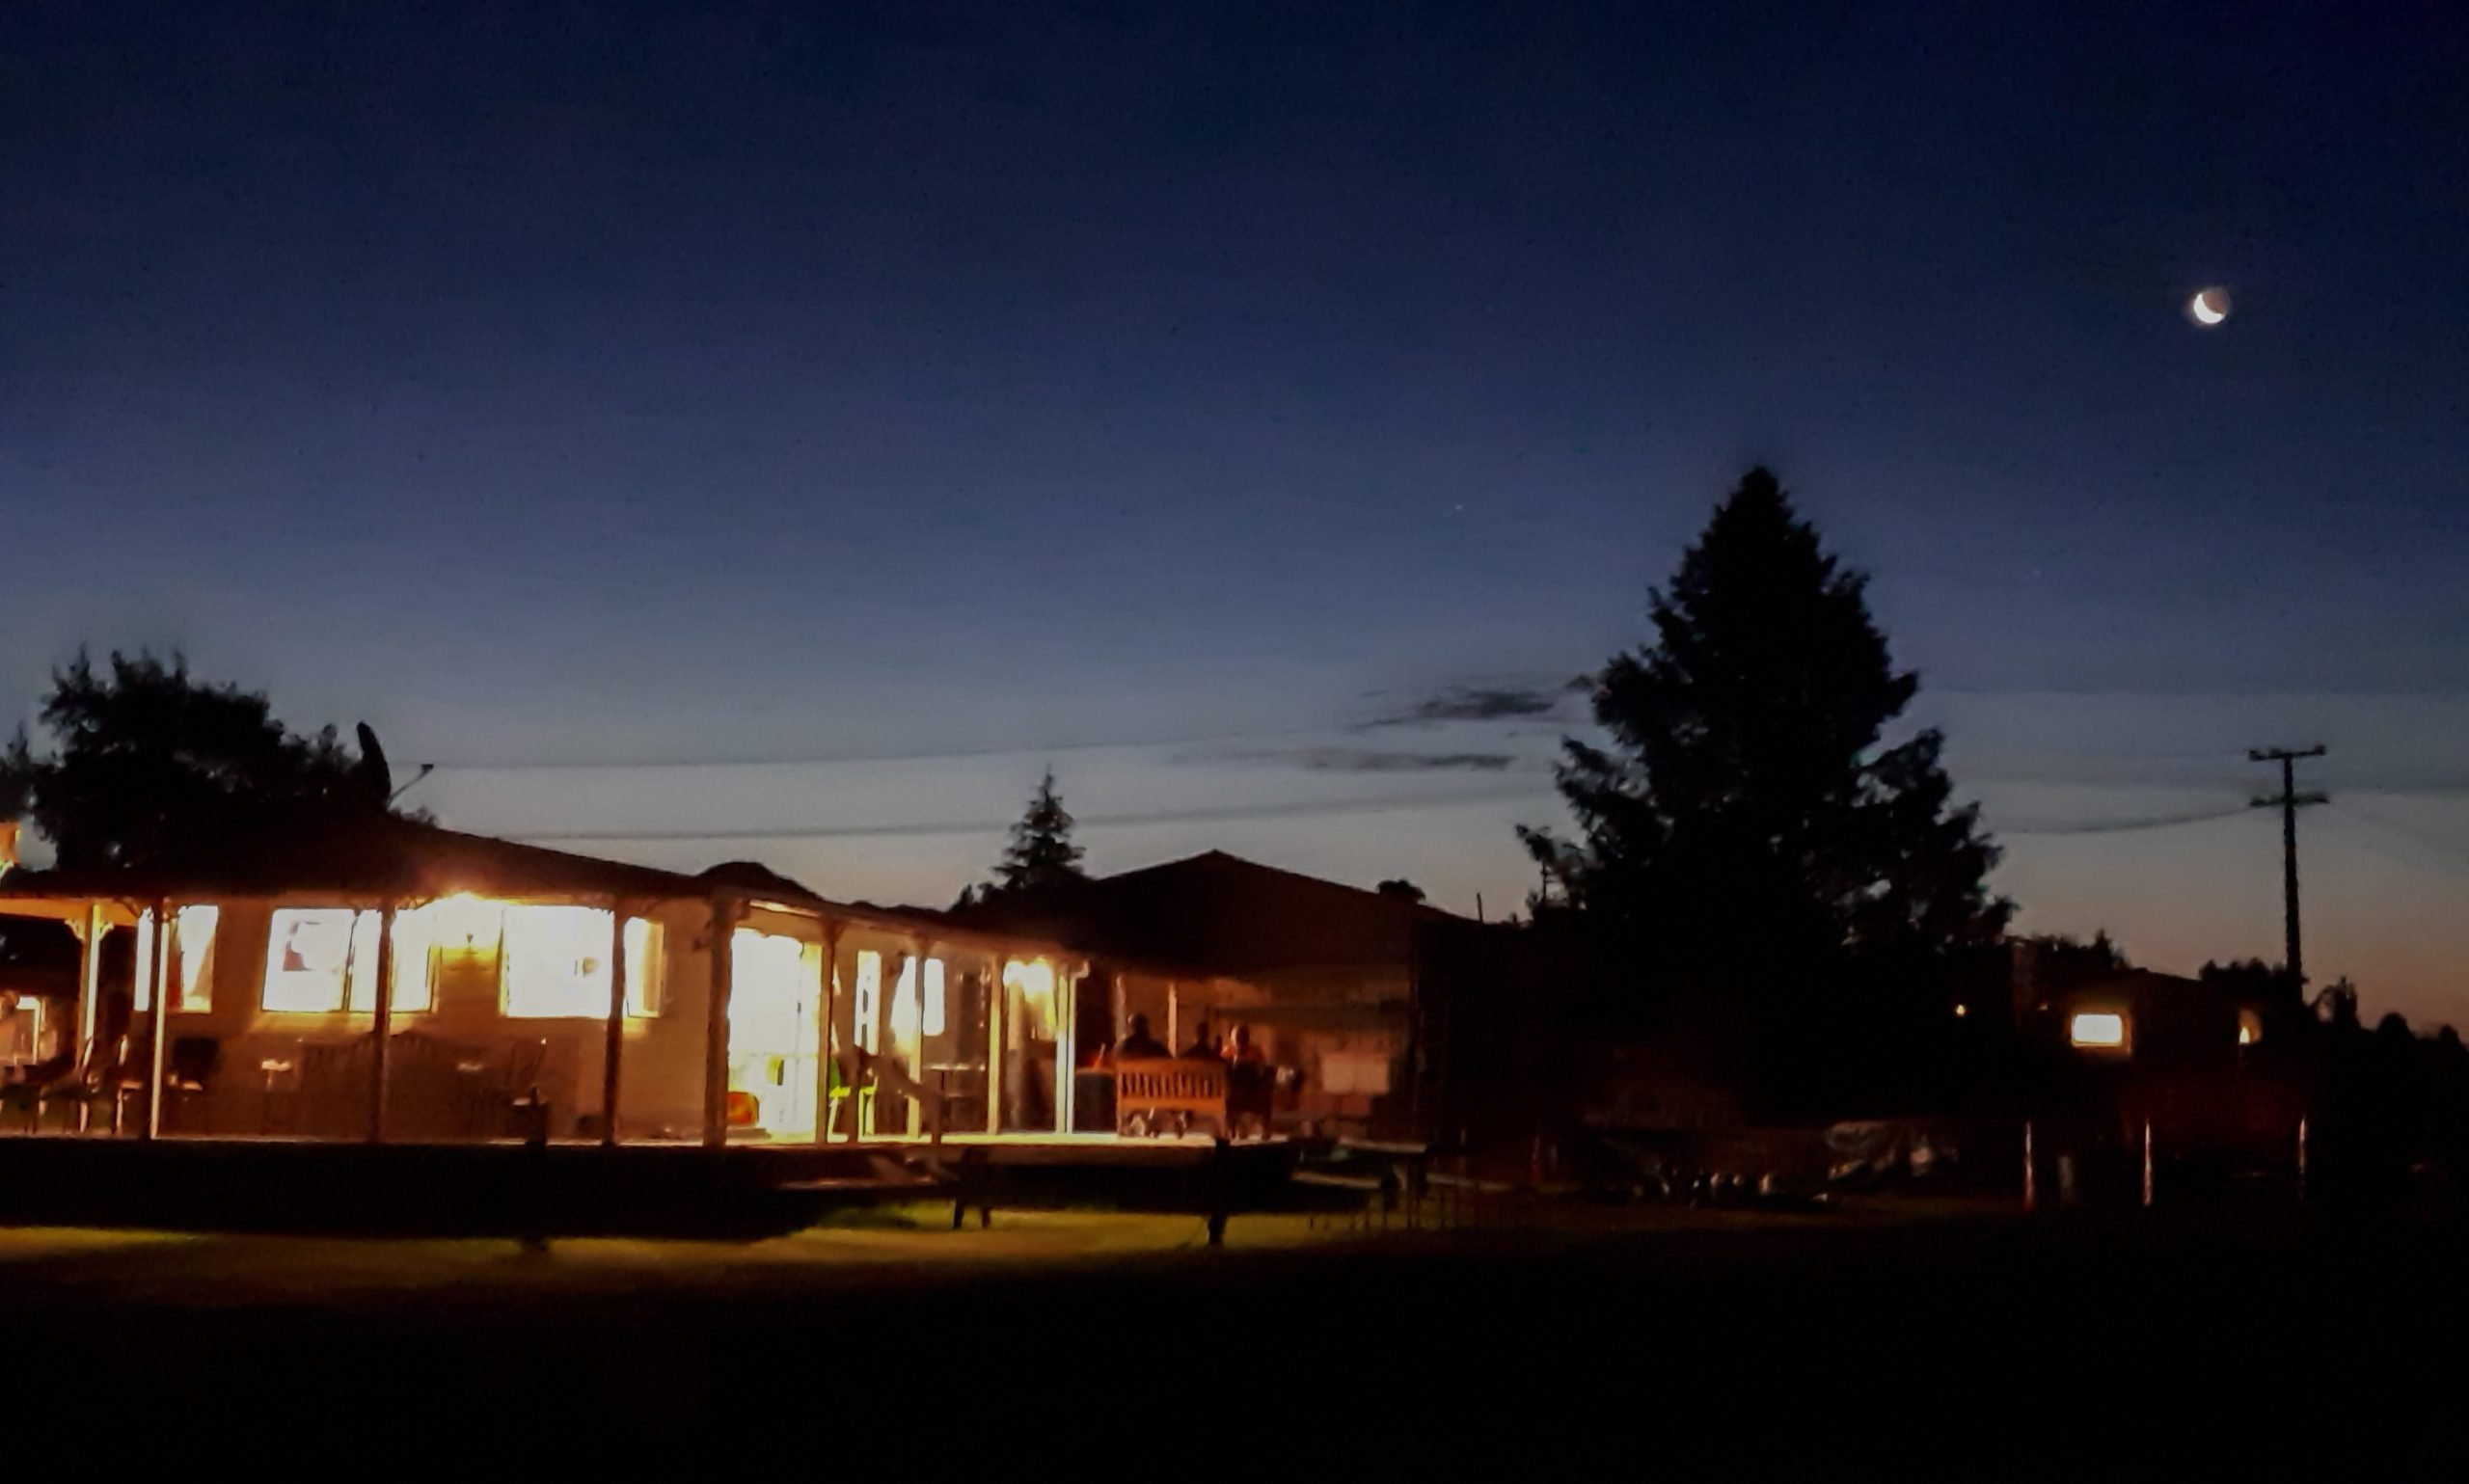 Raetihi Holiday Park at night